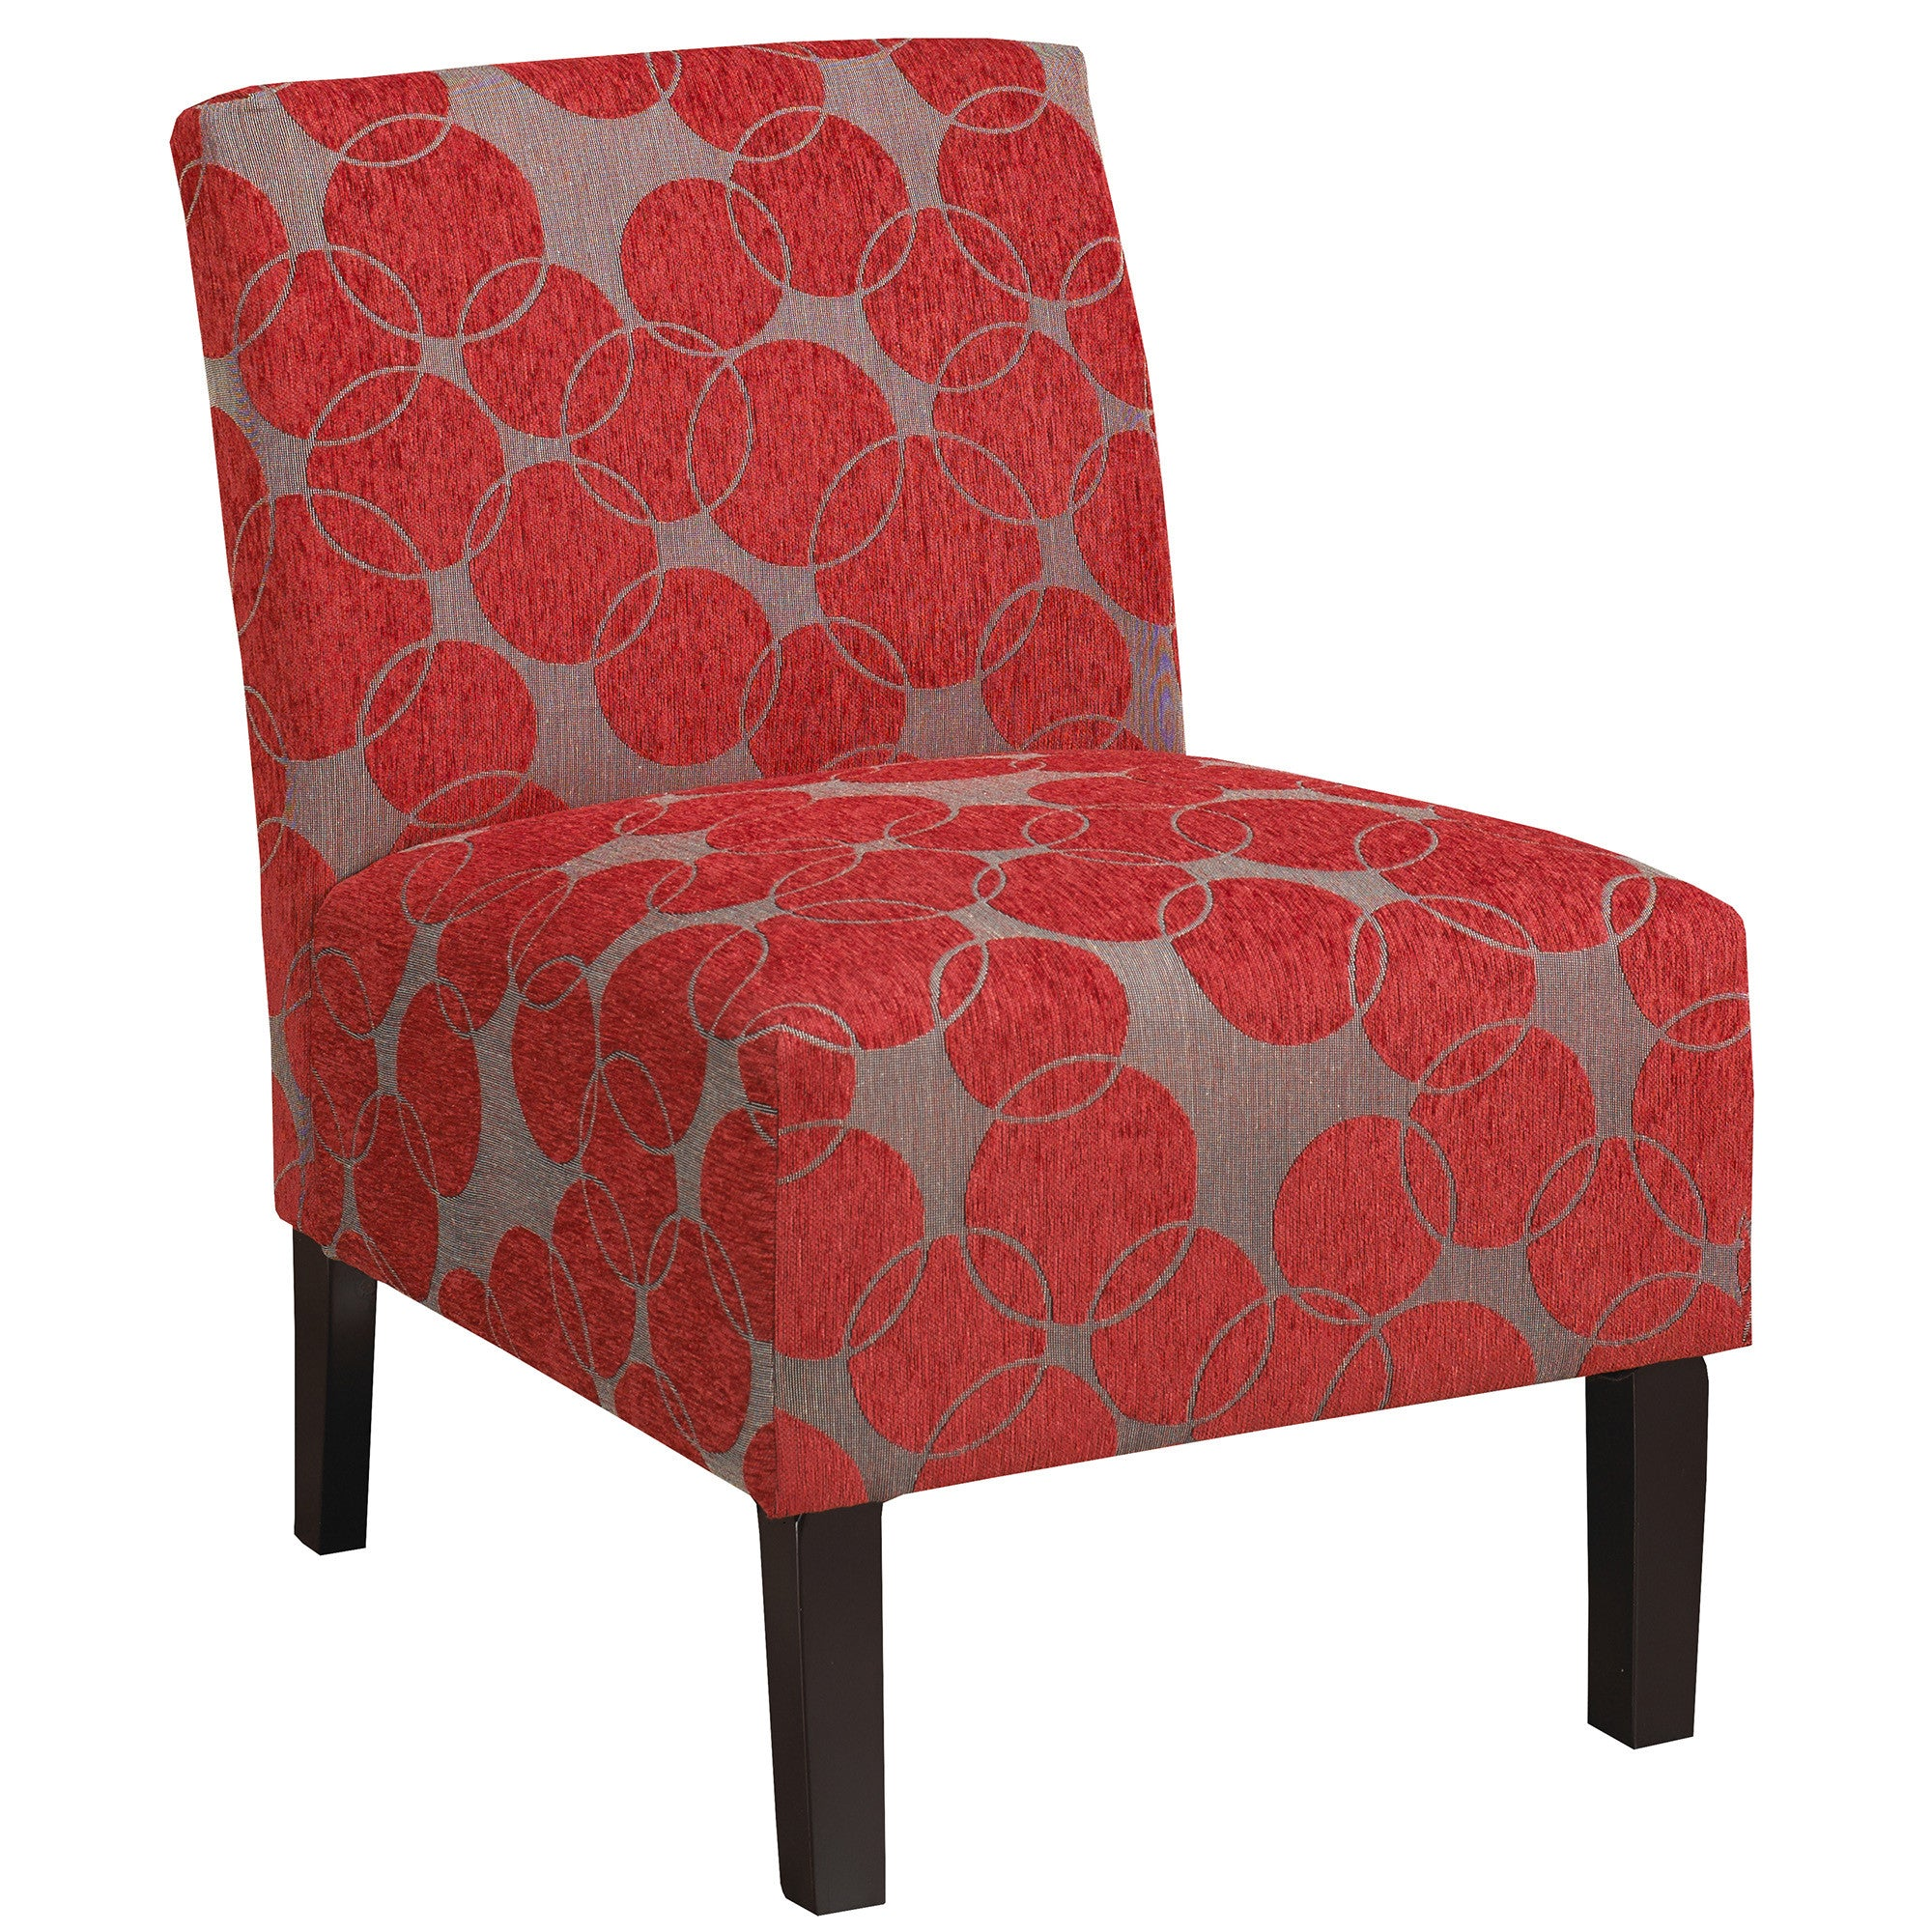 lanai accent chair in red  trendyshoppingmallcom - lanai accent chair in red